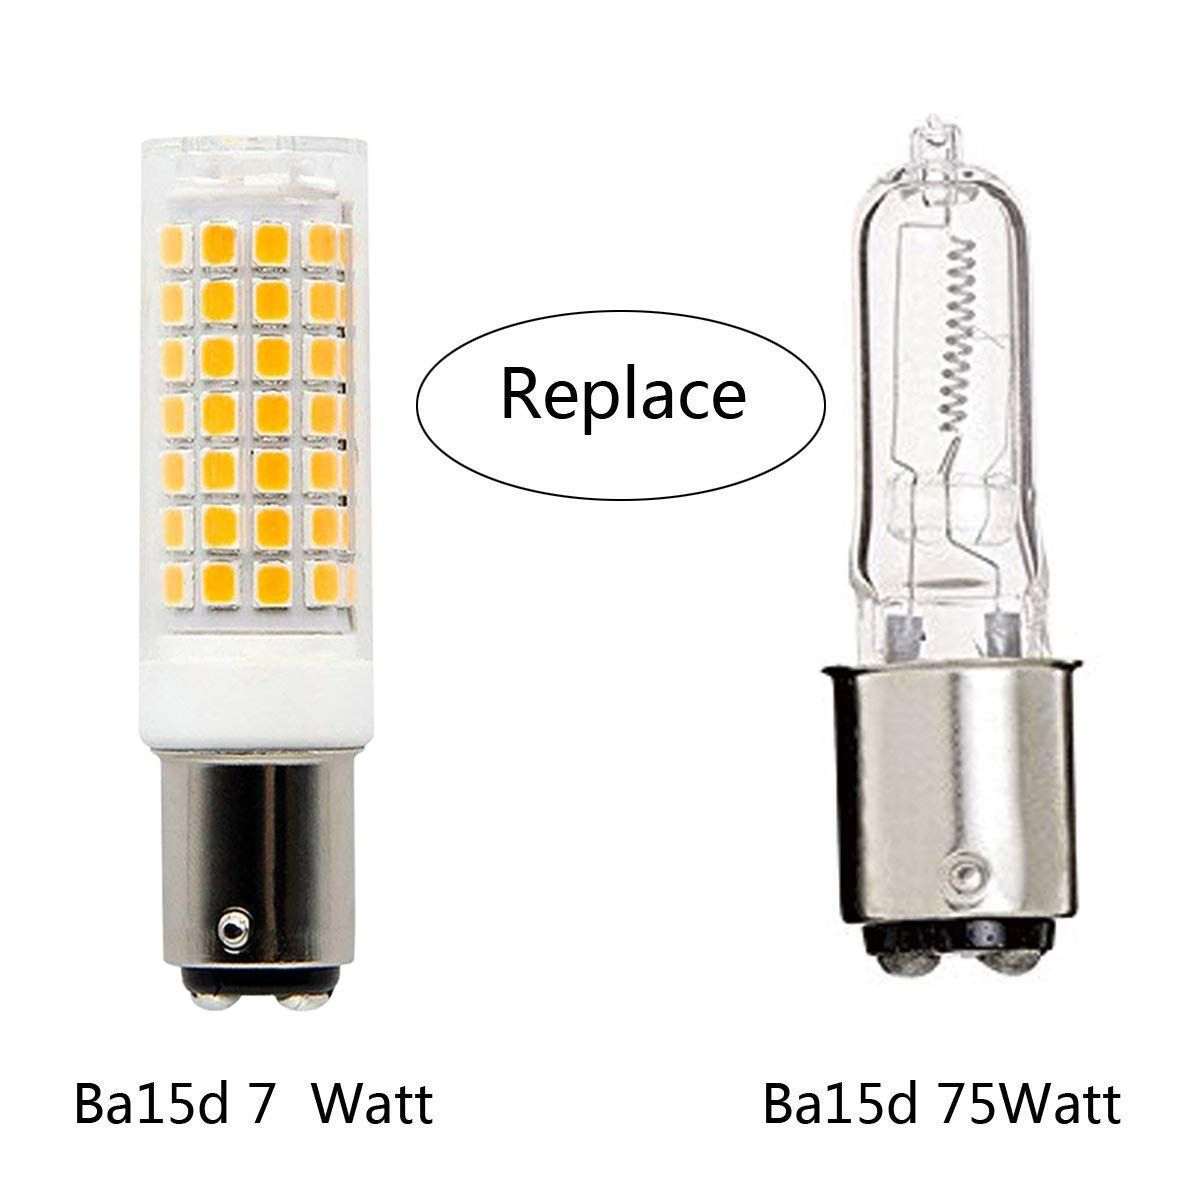 Ba15d Led Light Bulb Dimmable 7w 75w100w Halogen Bulbs Replacement Double Contact Bayonet Base 110v 120v 130v Input War In 2020 Halogen Bulbs Led Light Bulb Light Bulb